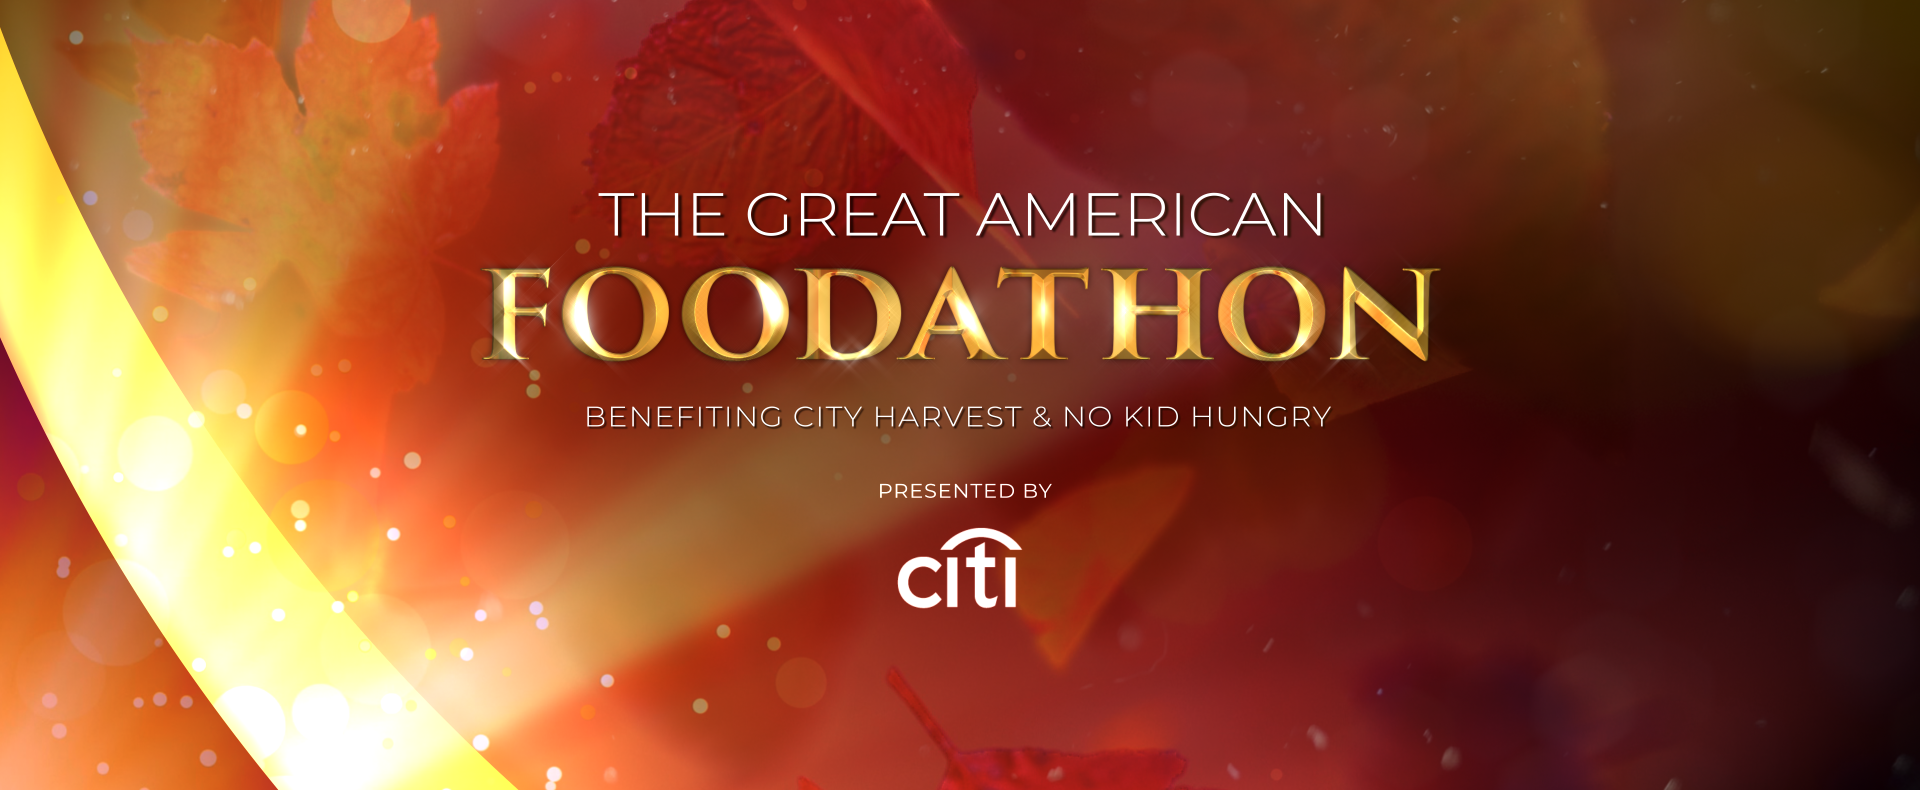 Great American Foodathon